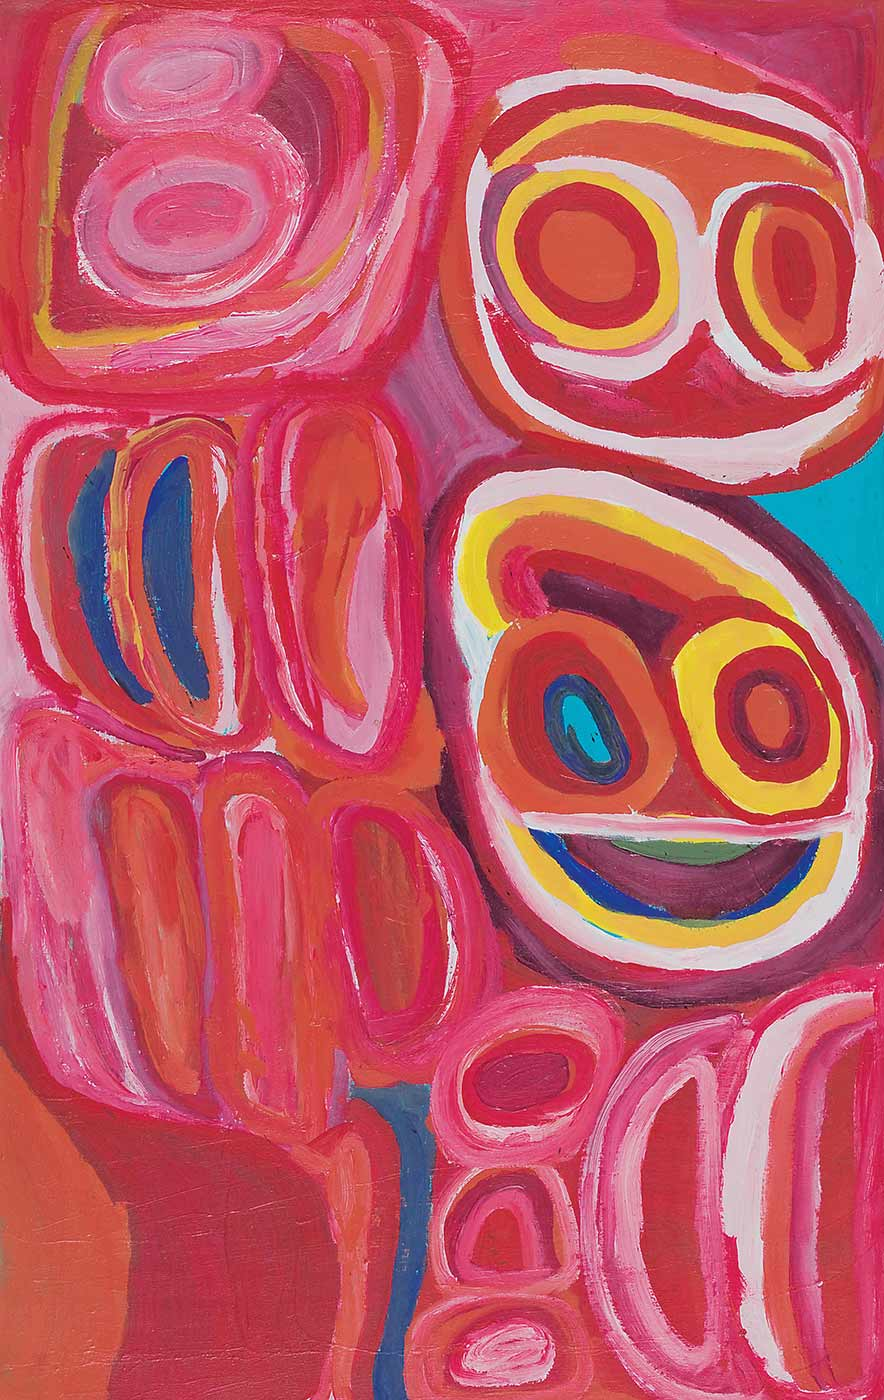 A dark pink toned painting on canvas with a face like motif in green, yellow, orange, purple, pink and blue to the right side. Above this there is a circle with two concentric circles within it side by side, in pink, red, and yellow. The left side and lower section of the painting is filled with pink, red, purple and blue concentric shapes with an orange squarish shape in the bottom left corner. - click to view larger image